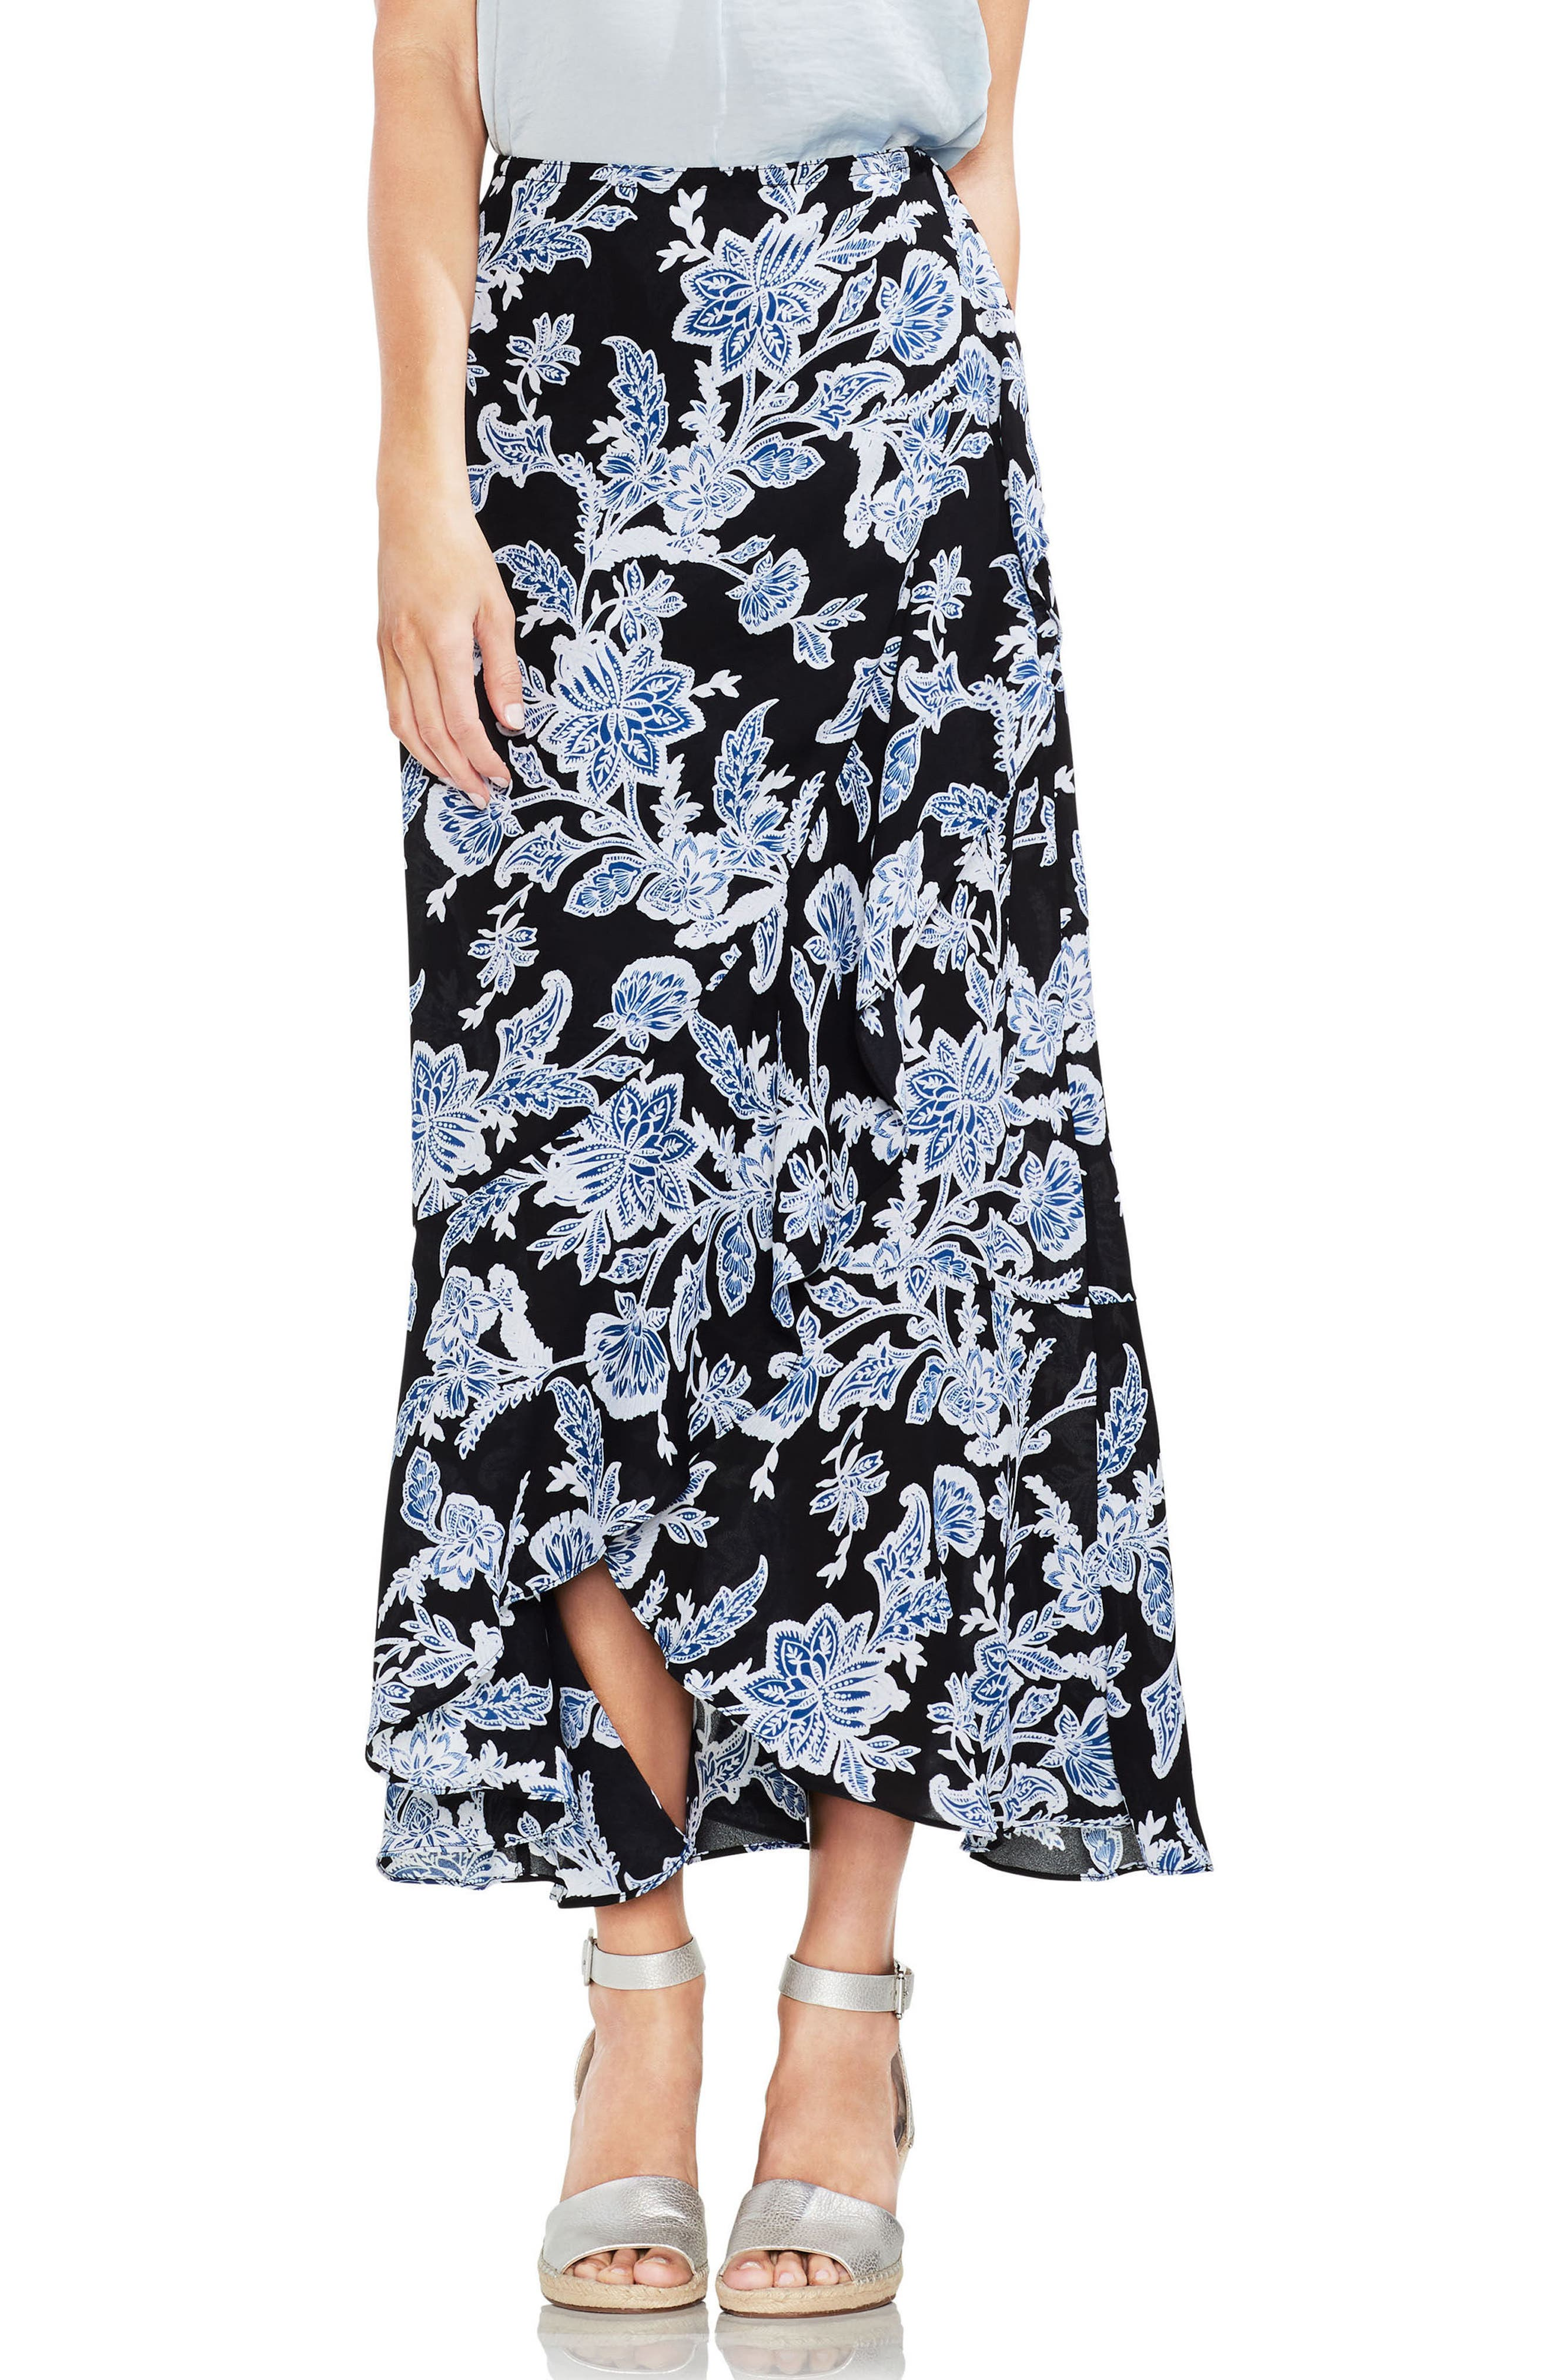 Vince Camuto Ruffled Faux Wrap Floral Skirt